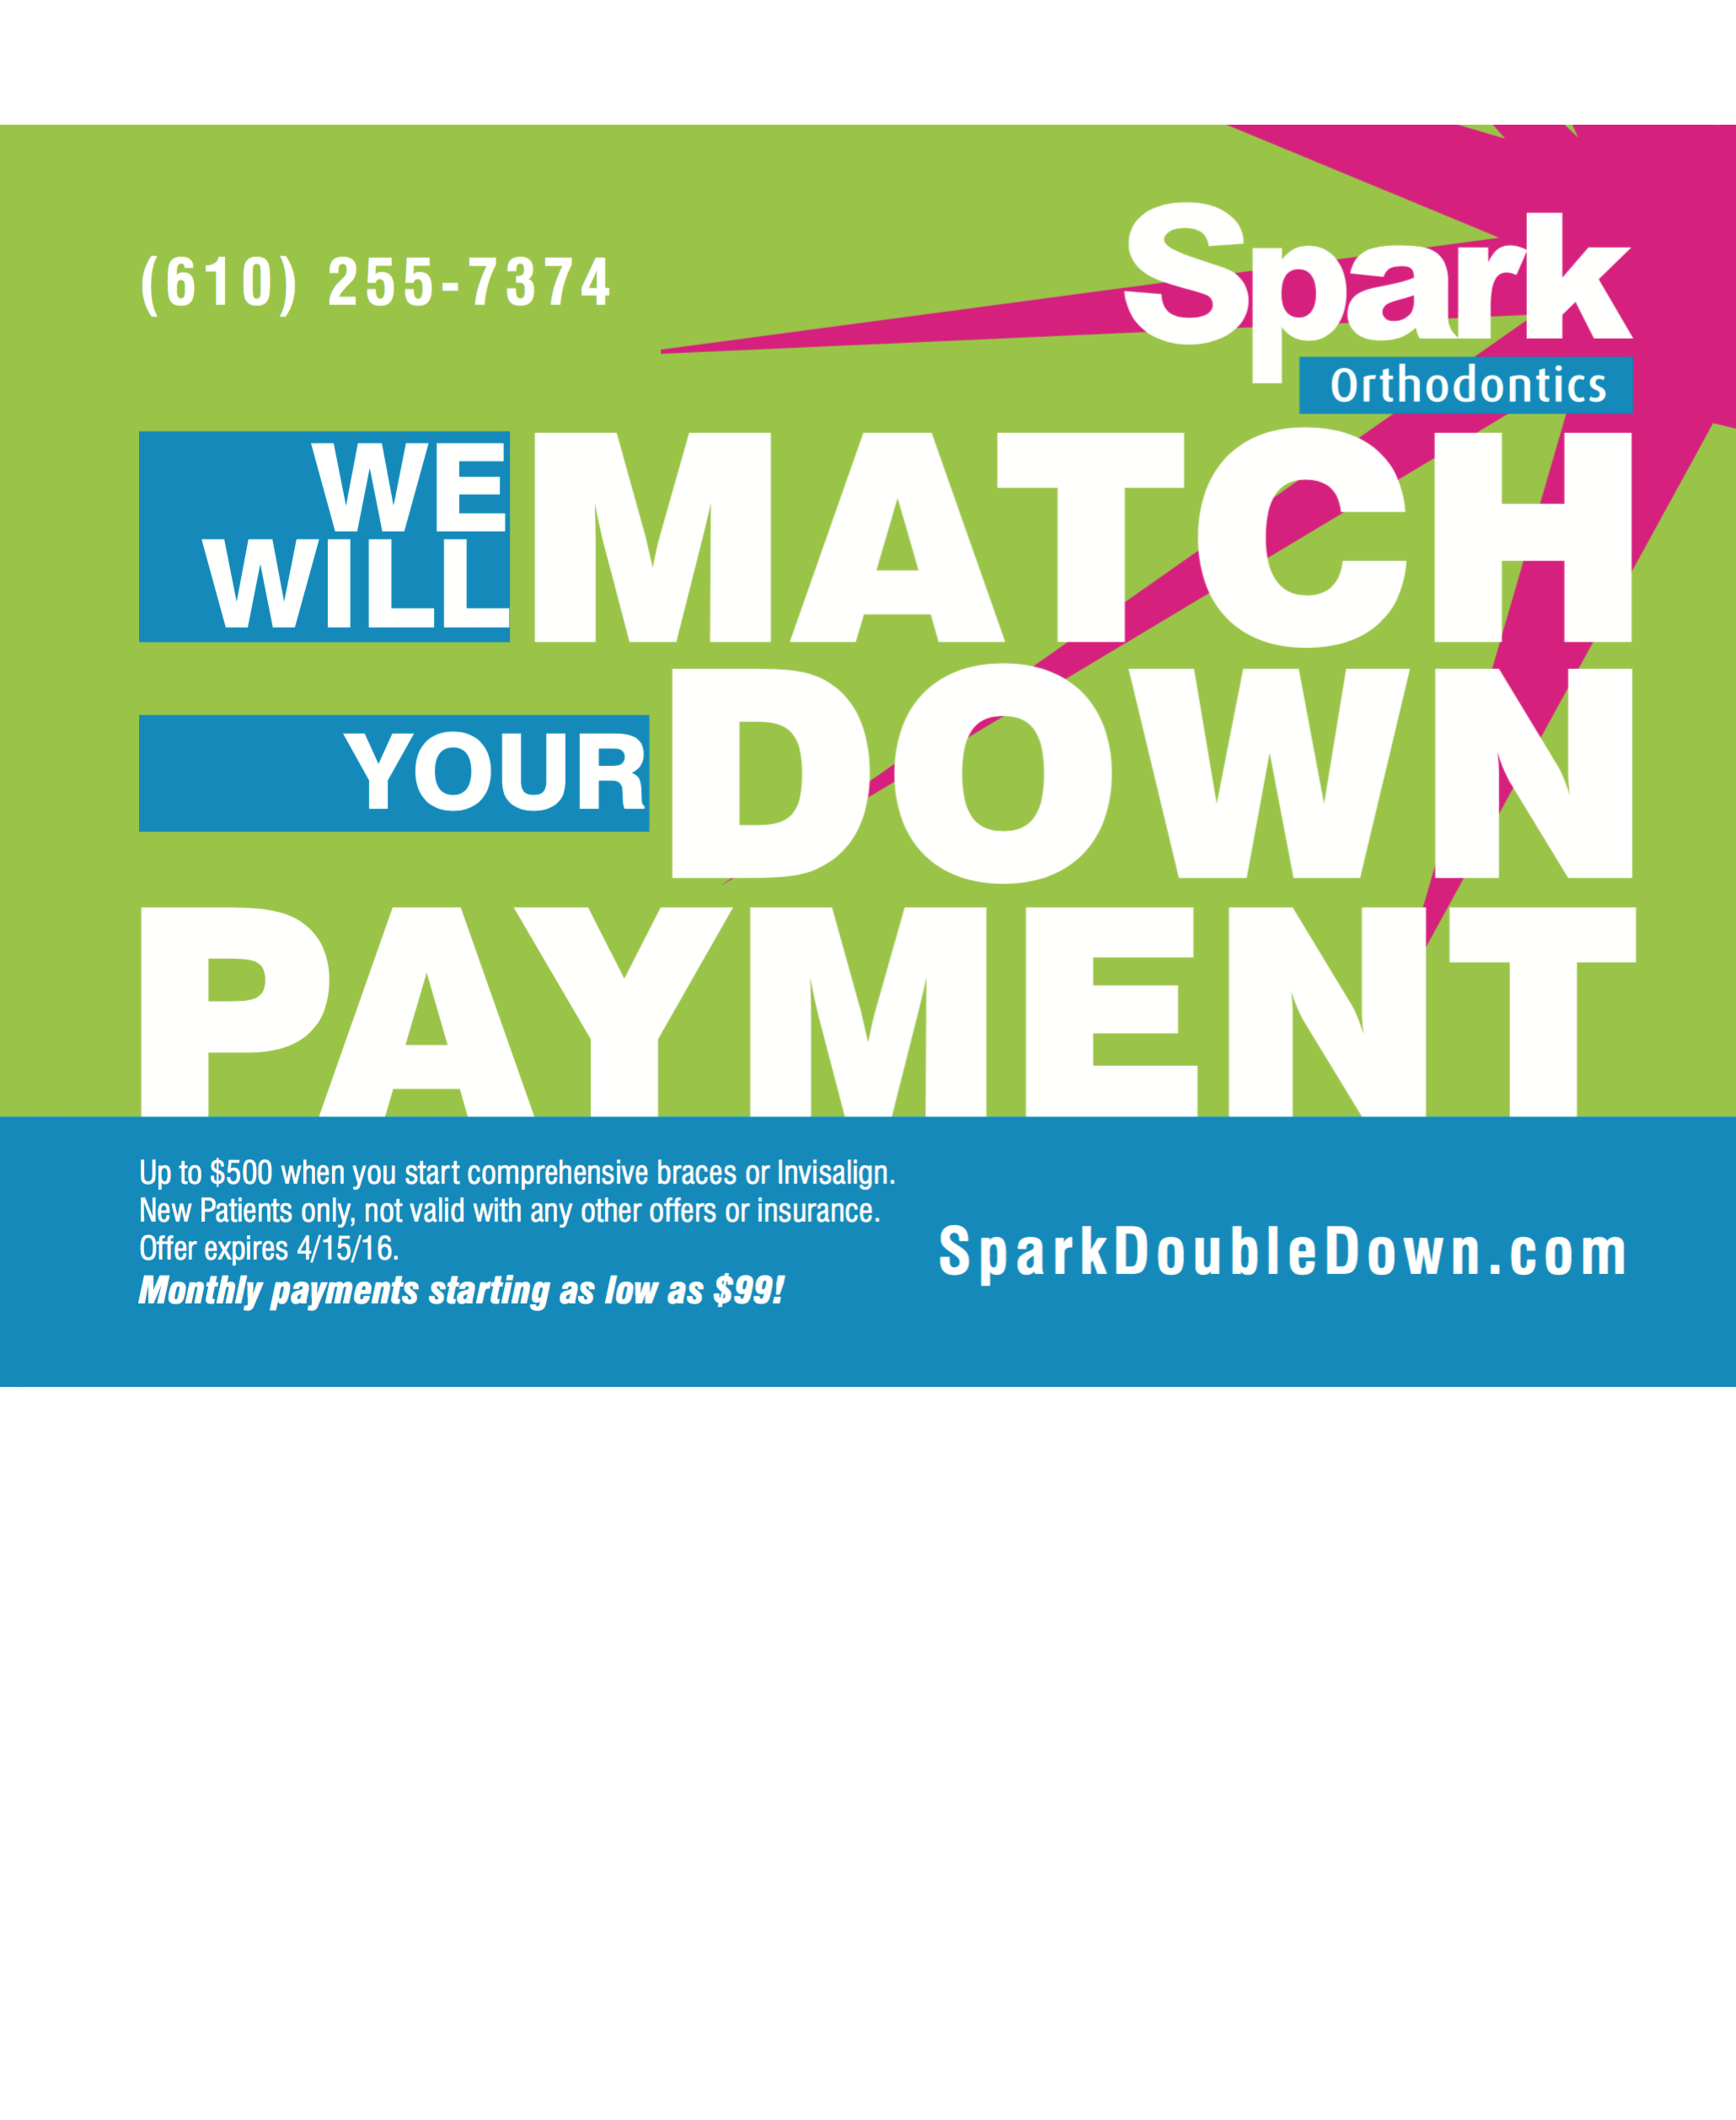 spark orthodontics double down